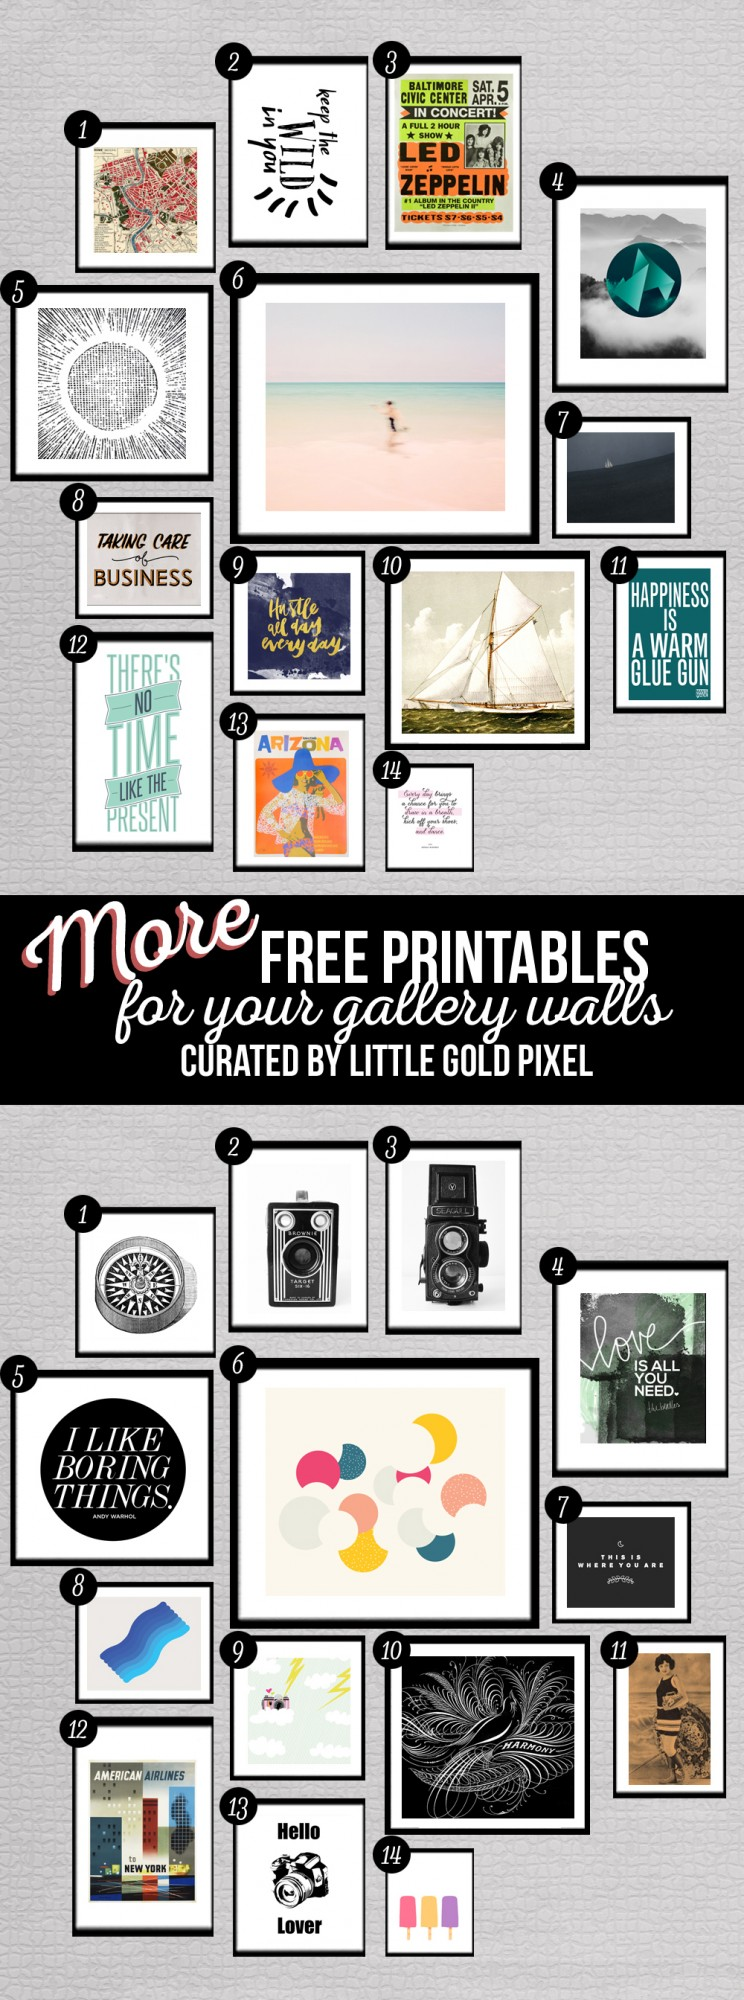 It's just an image of Stupendous Gallery Wall Printables